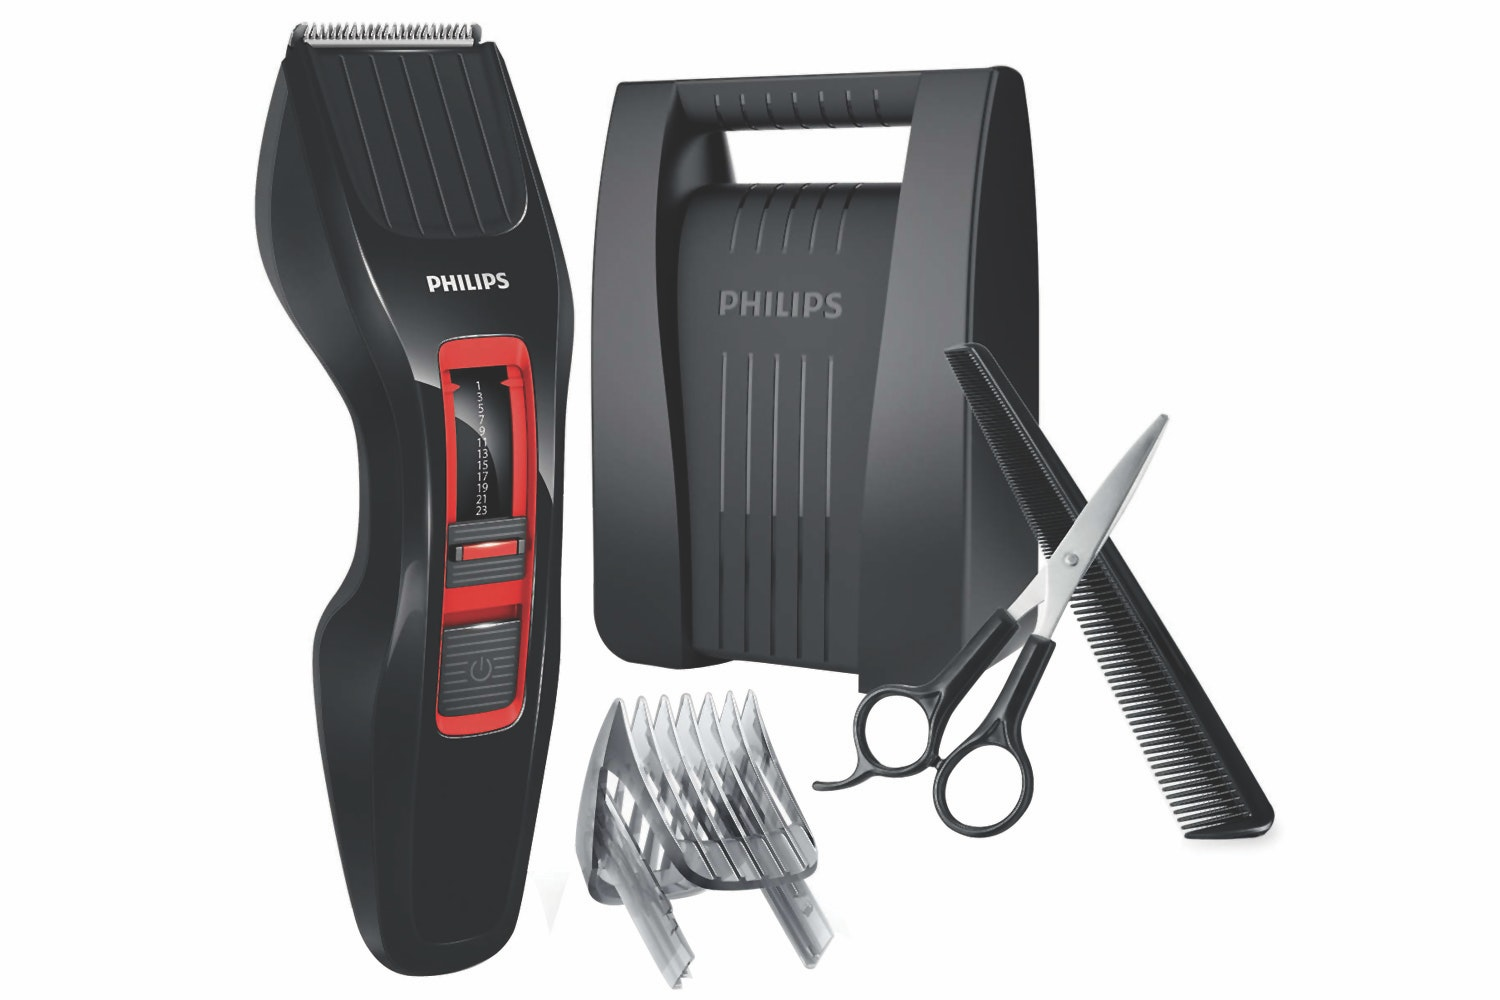 Philips Cordless 3000 Series Hair Clipper | HC3420/83